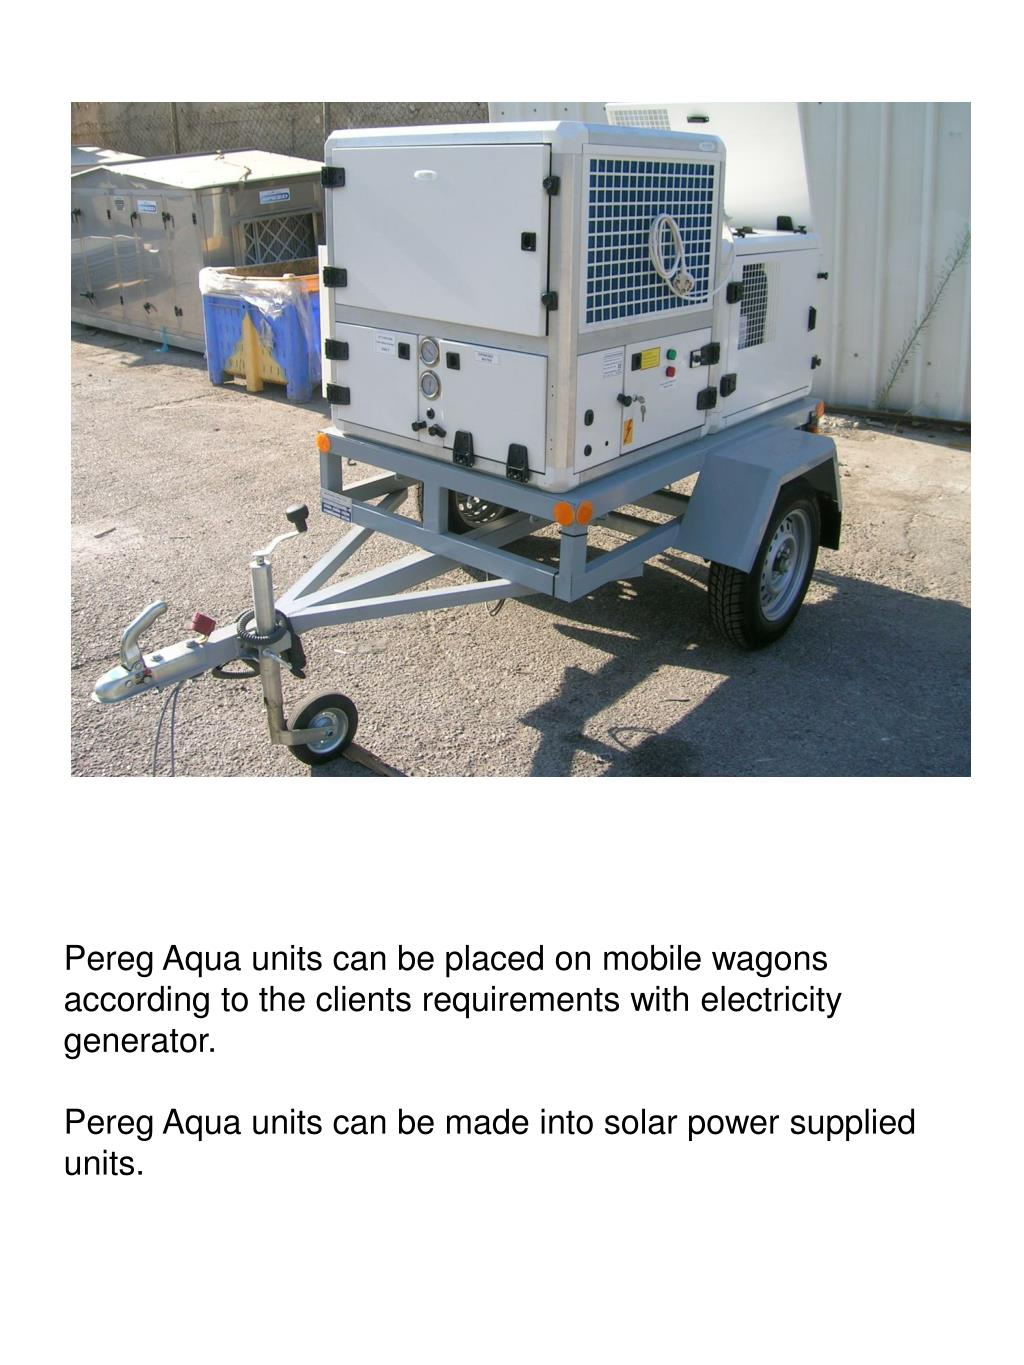 Pereg Aqua units can be placed on mobile wagons according to the clients requirements with electricity generator.